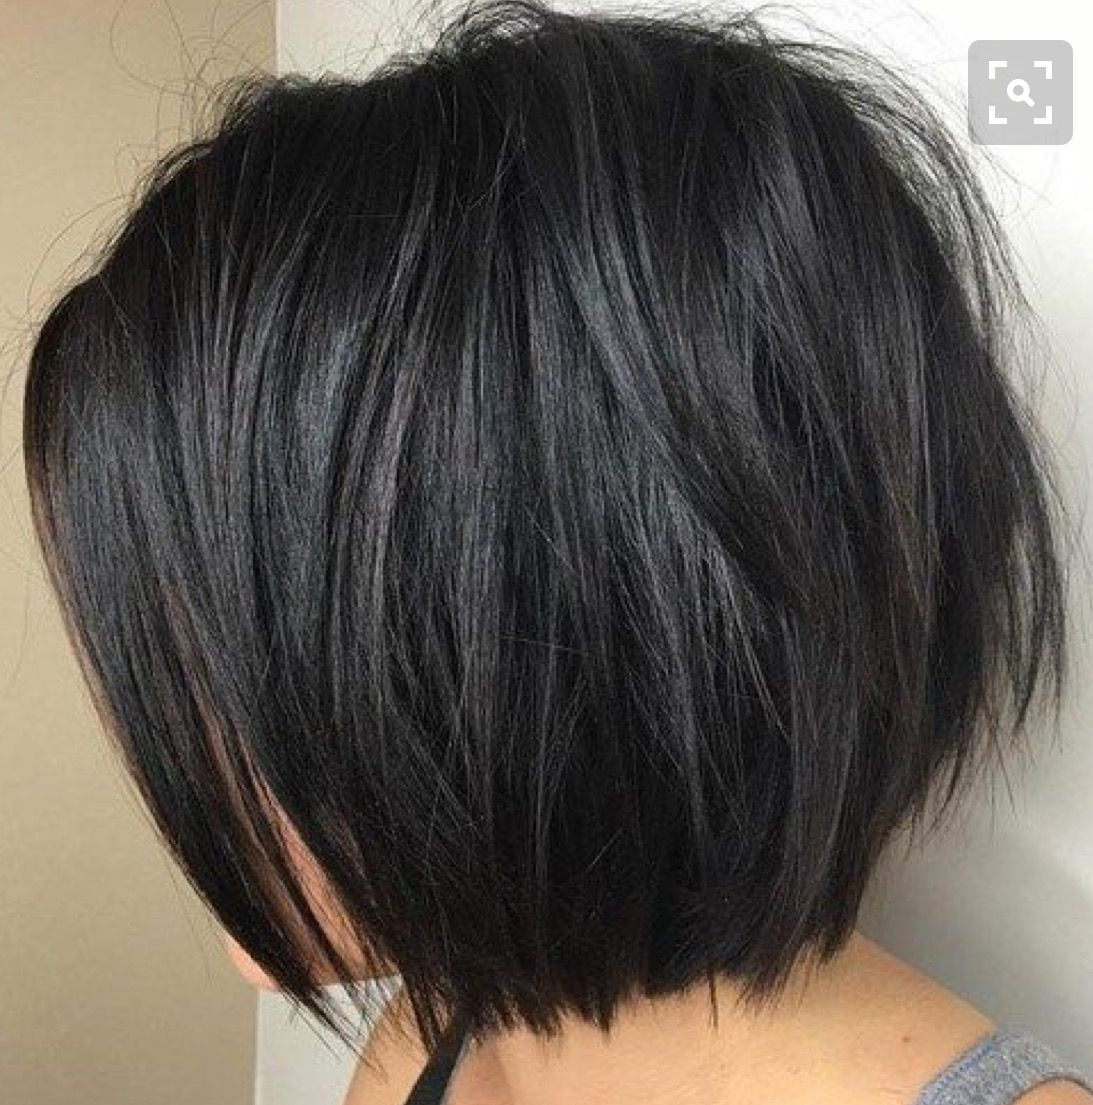 Via therighthairstyles haircut pinterest hair style